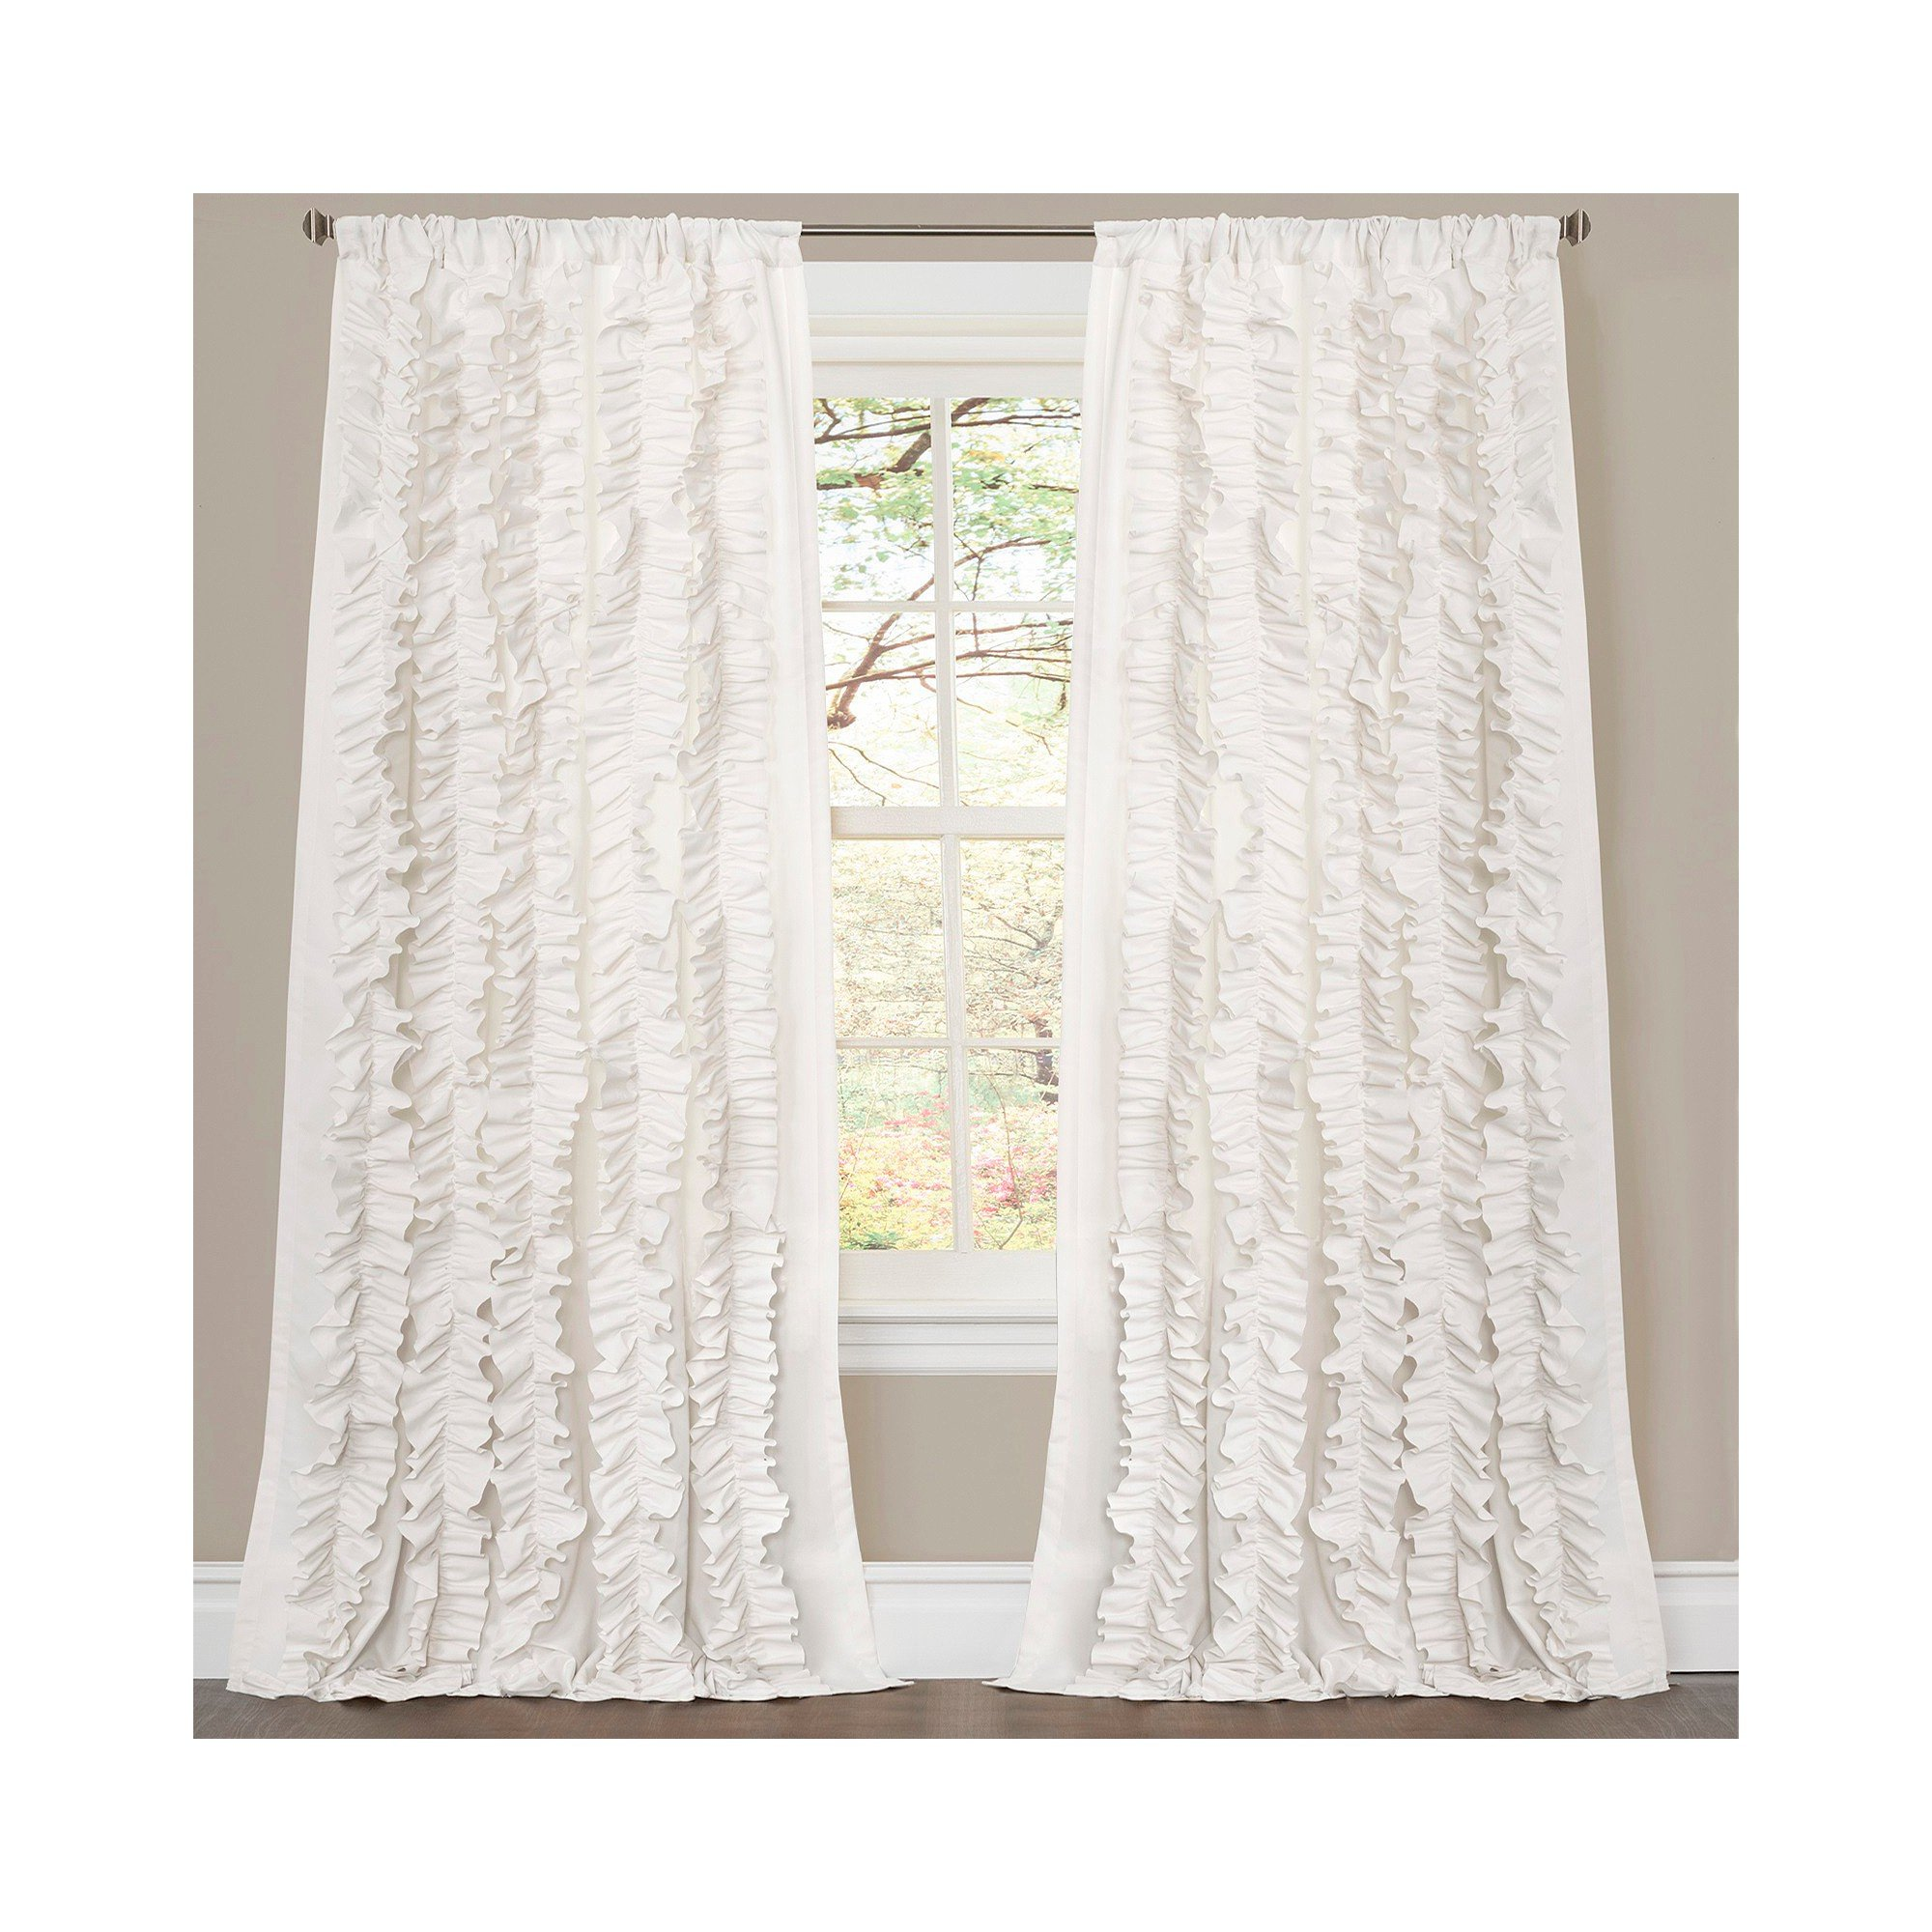 "Bedroom Curtains at Walmart Awesome Belle Curtain Panel White 84""x54"" Lush Decor"